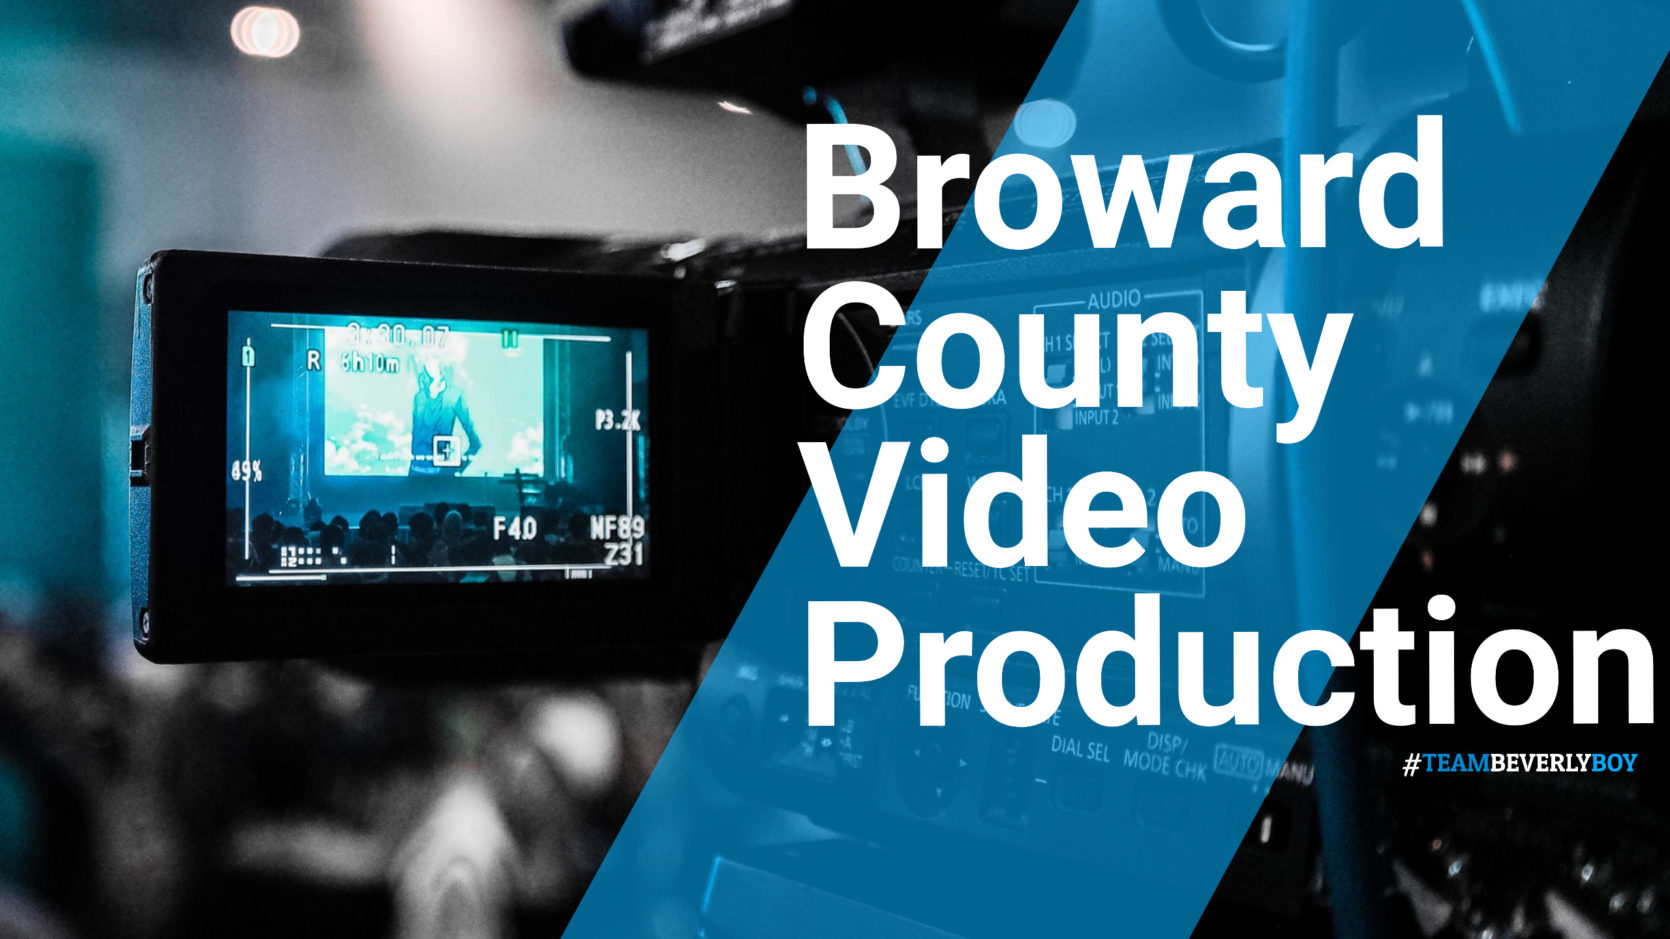 Broward county video production